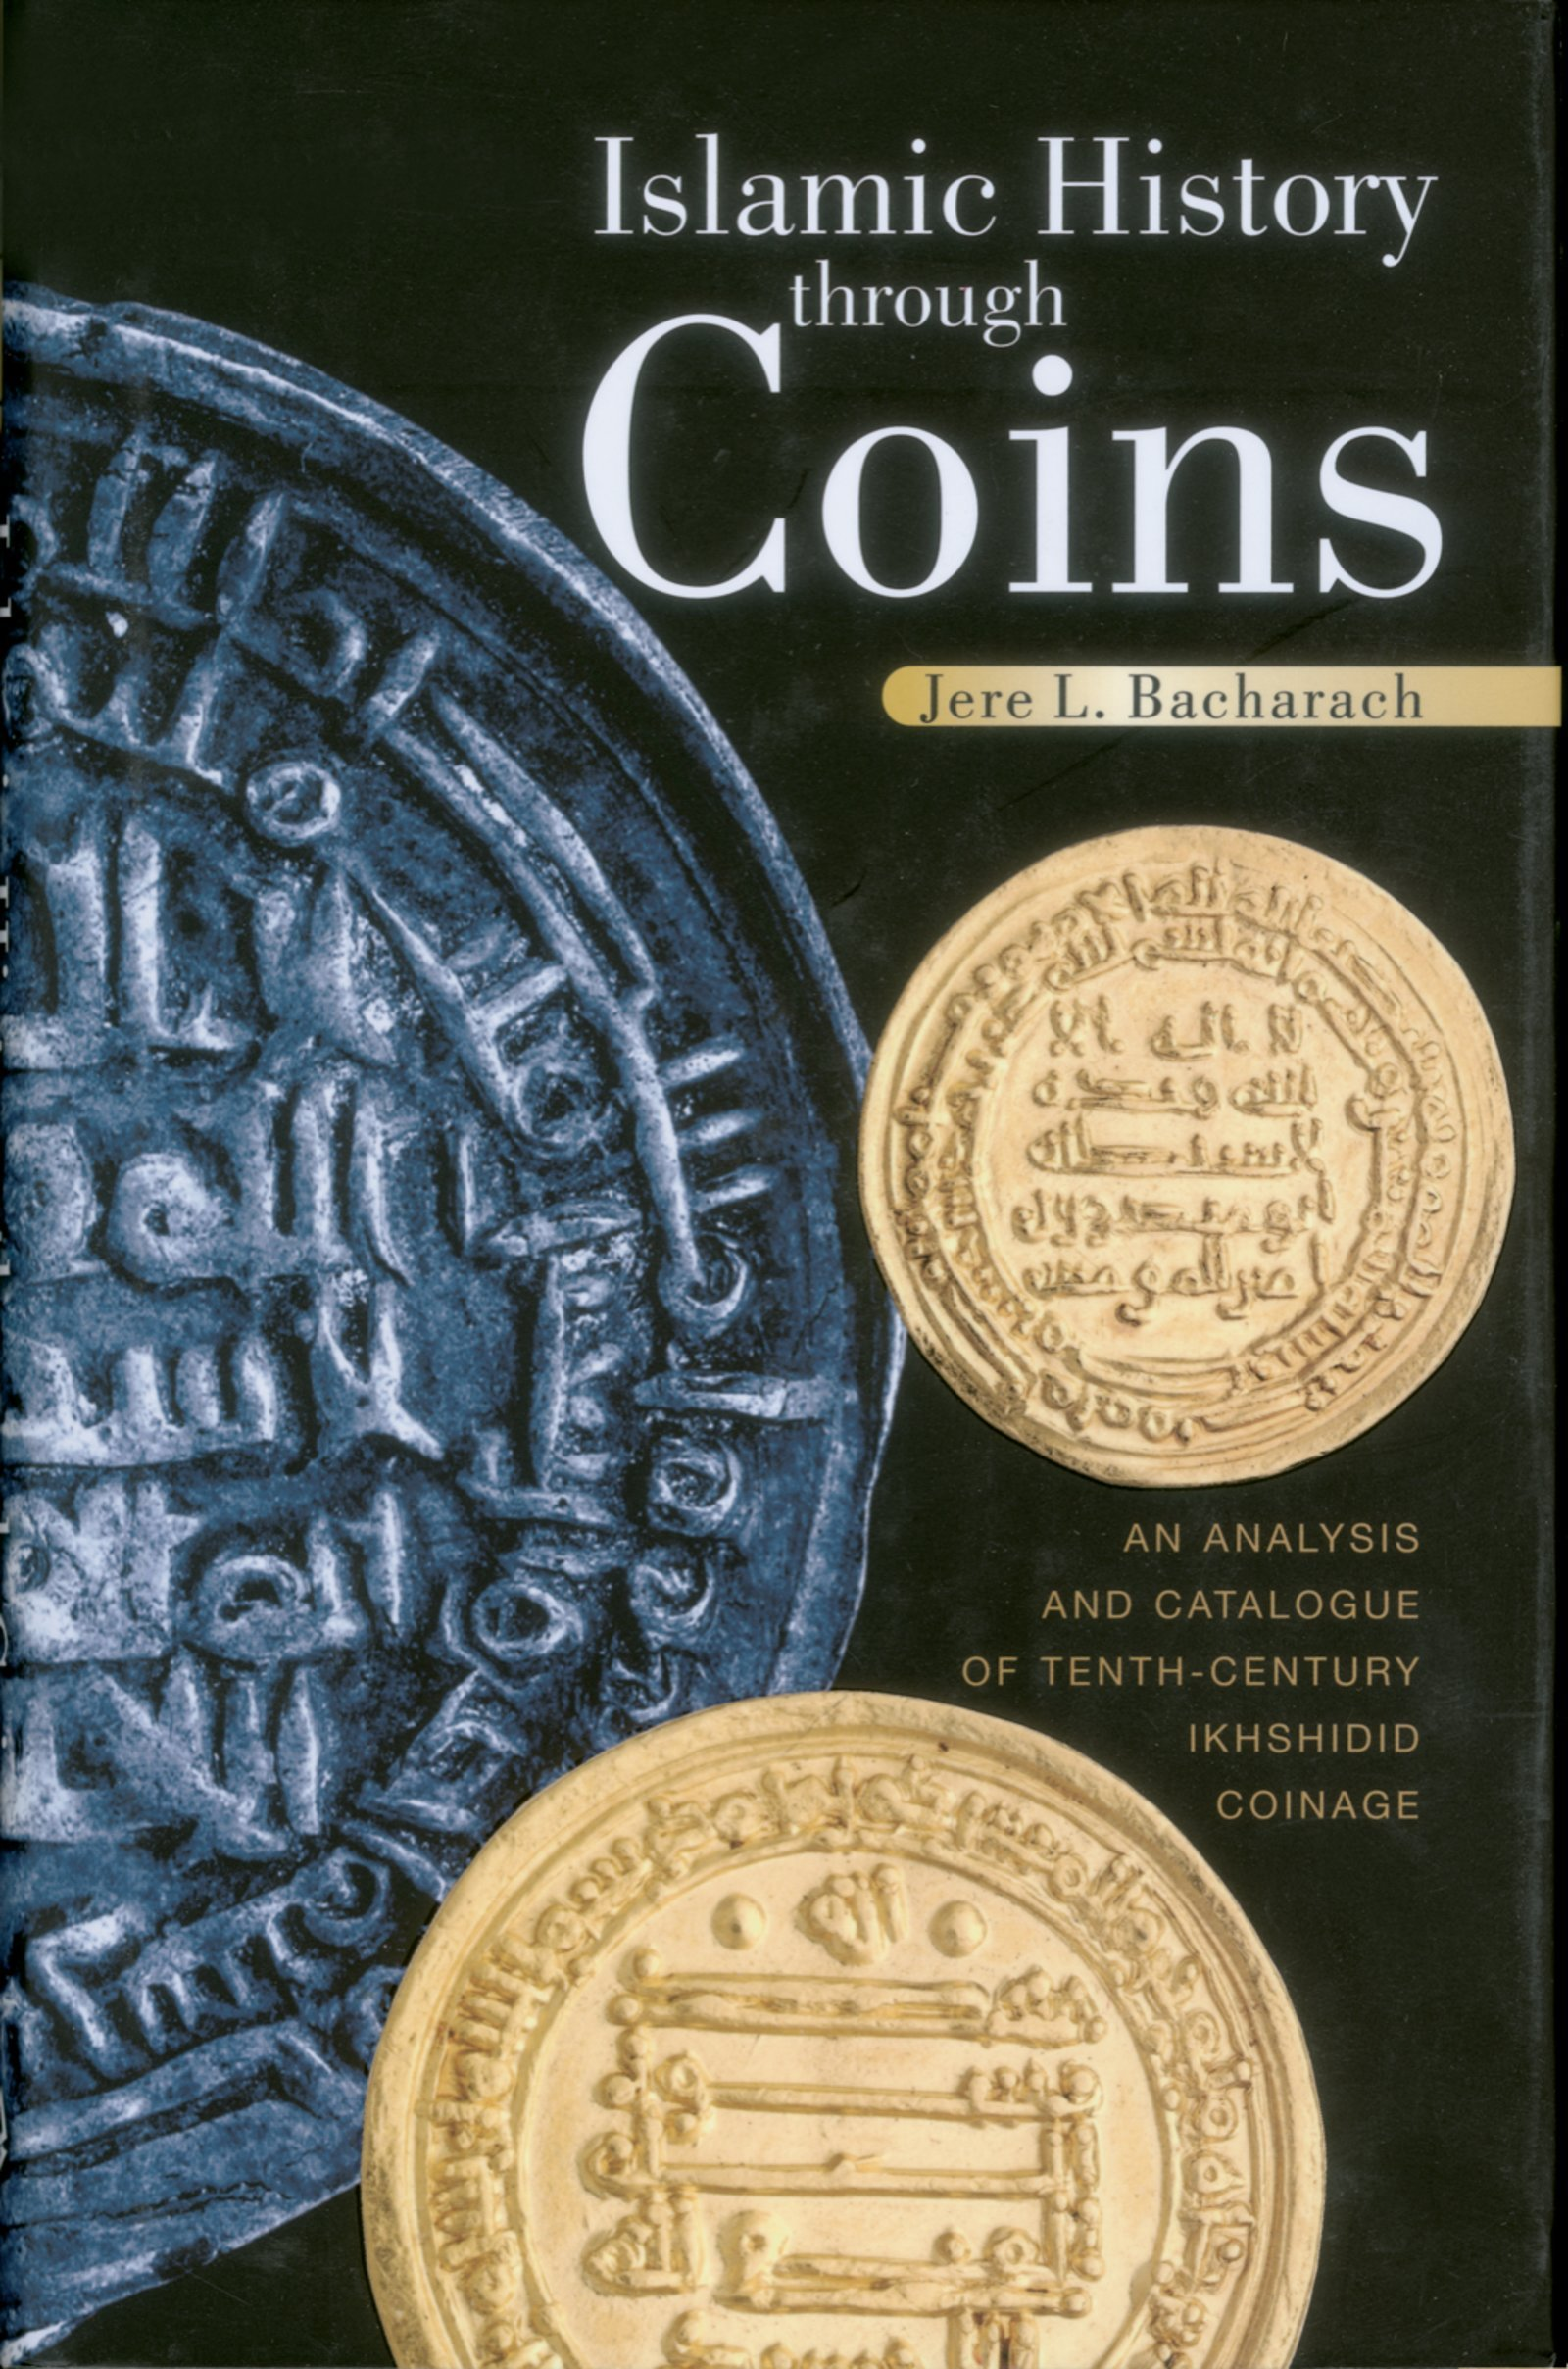 Download Islamic History Through Coins: An Analysis and Catalogue of Tenth-Century Ikhshidid Coinage pdf